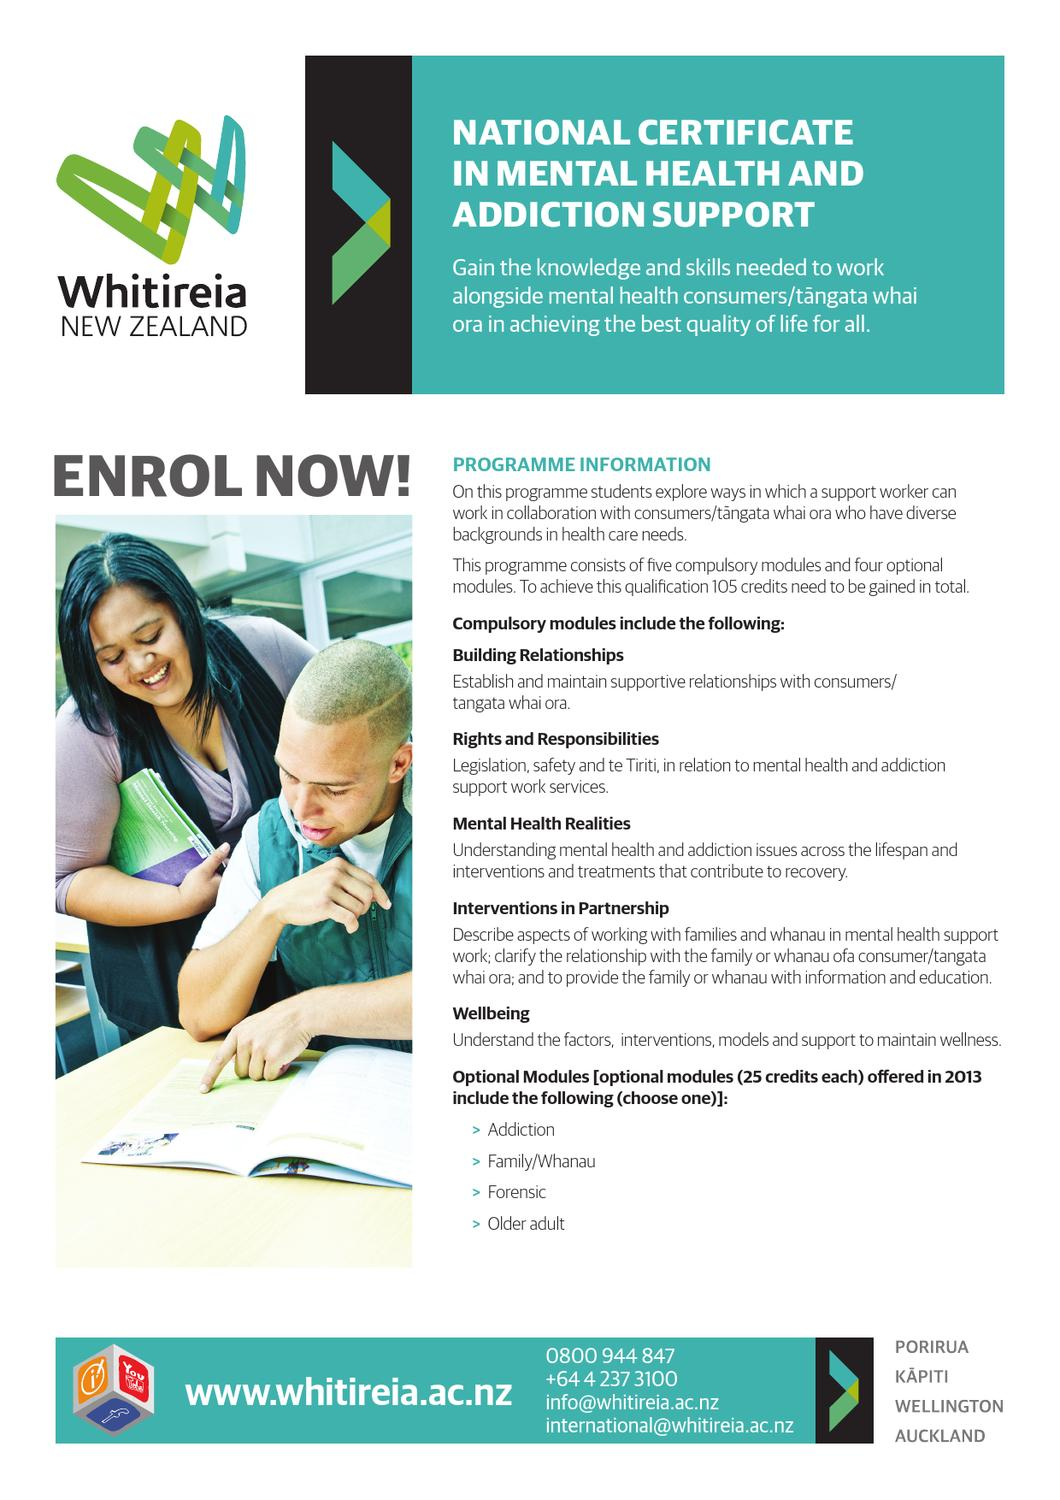 National Certificate In Mental Health And Addiction Support By